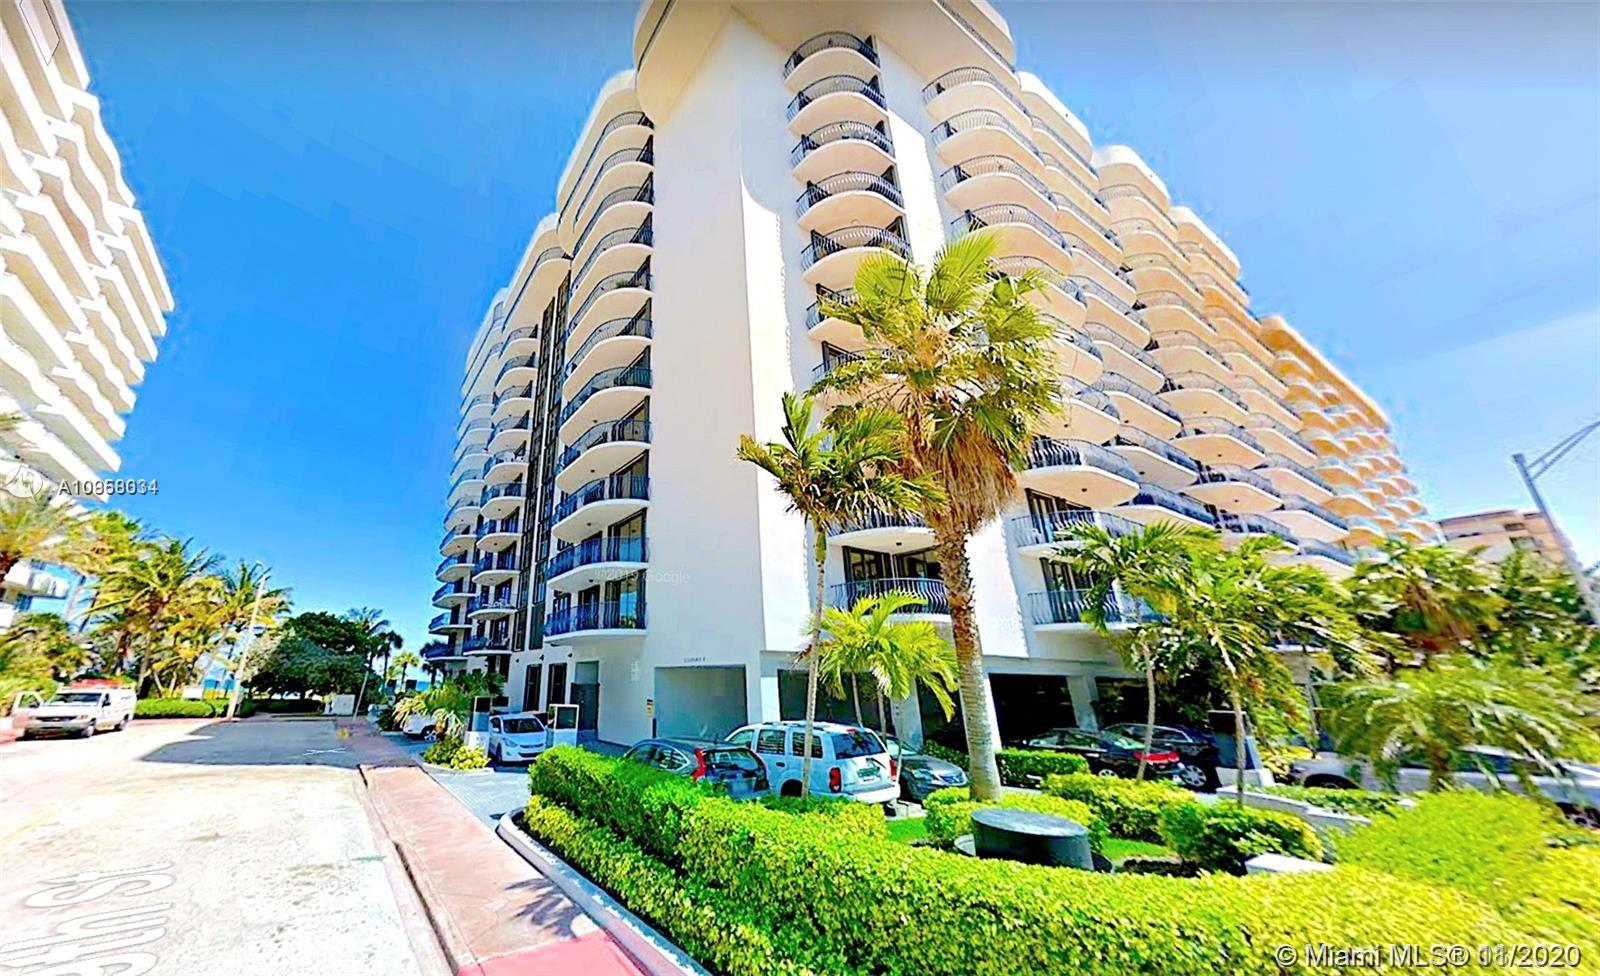 LOWEST PRICE IN THE BUILDING!!! BREATHTAKING SUNSETS AND CITY VIEWS, LARGE BALCONY, OCEANFRONT BOUTIQUE BUILDING, CHAMPLAIN TOWERS NORTH IS A 24 HRS SECURITY LOCATED IN DESIRABLE SURFSIDE !! , 1200 SQ FT APARTMENT! 1 BEDROOM, 2 FULL BATHS, OCEAN FRONT HEATED POOL, RENOVATED FITNESS CENTER, BARBECUE AREA, SAUNA & STATE OF THE ART ENTERTAINMENT CENTER. ALMOST FORGOT TO TELL ABOUT THE ENJOYABLE SAND BEACH AND OCEAN AT YOUR FEET, CLOSE TO RESTAURANTS, POST OFFICE, BAL HARBOR SHOPS AND MUCH MORE...SHOWING THURSDAY APRIL, 15TH  12:30PM CONFIRM WITH LISTING AGENT